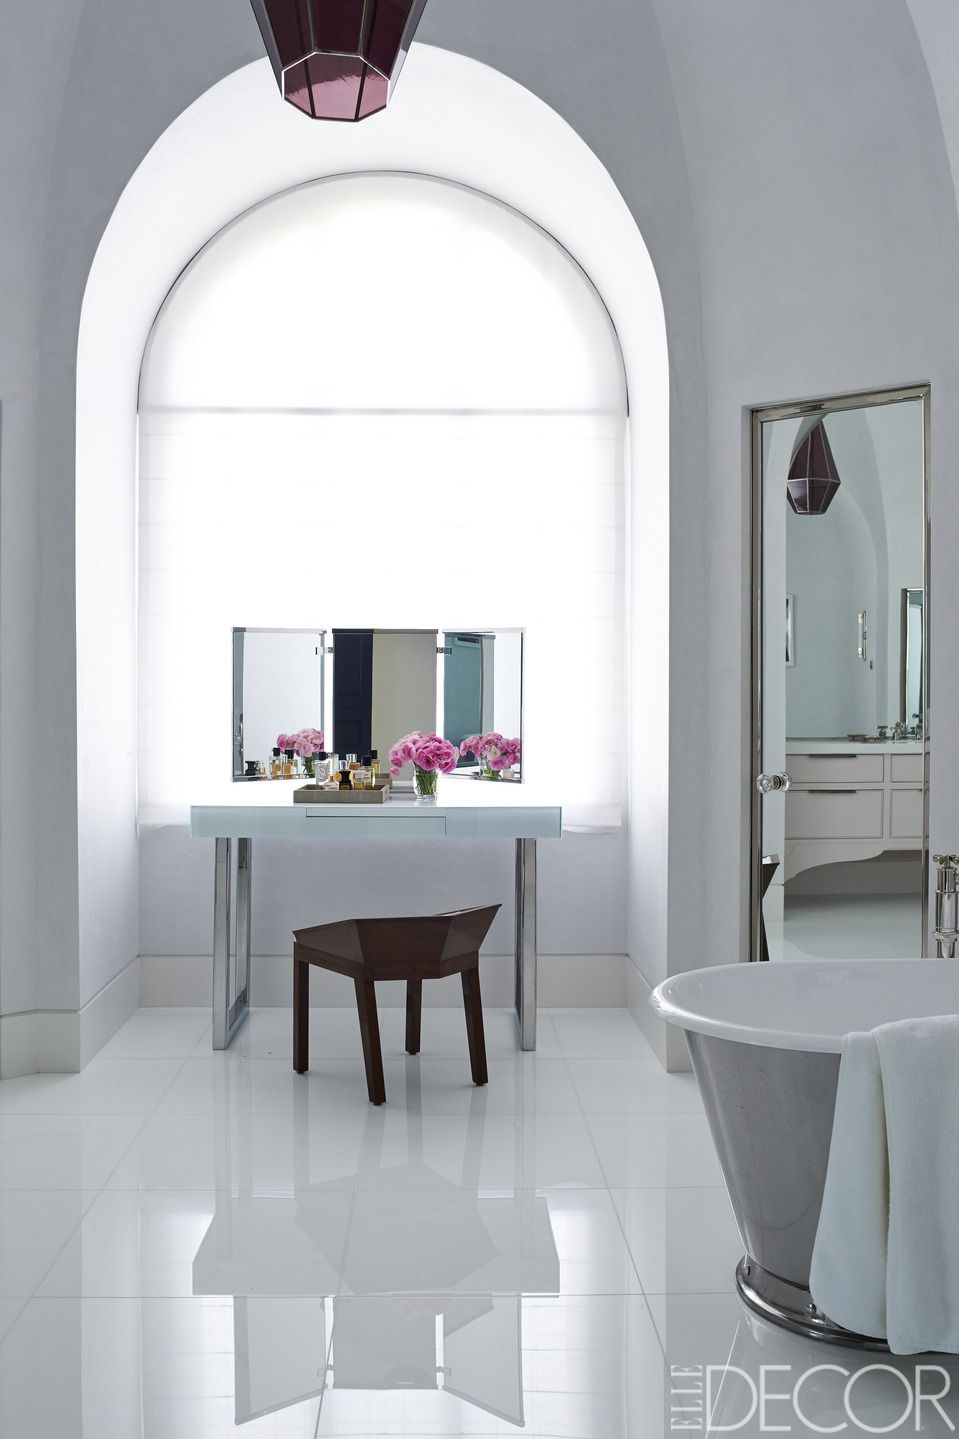 Design White Bathroom 25 white bathroom design ideas decorating tips for all bathrooms